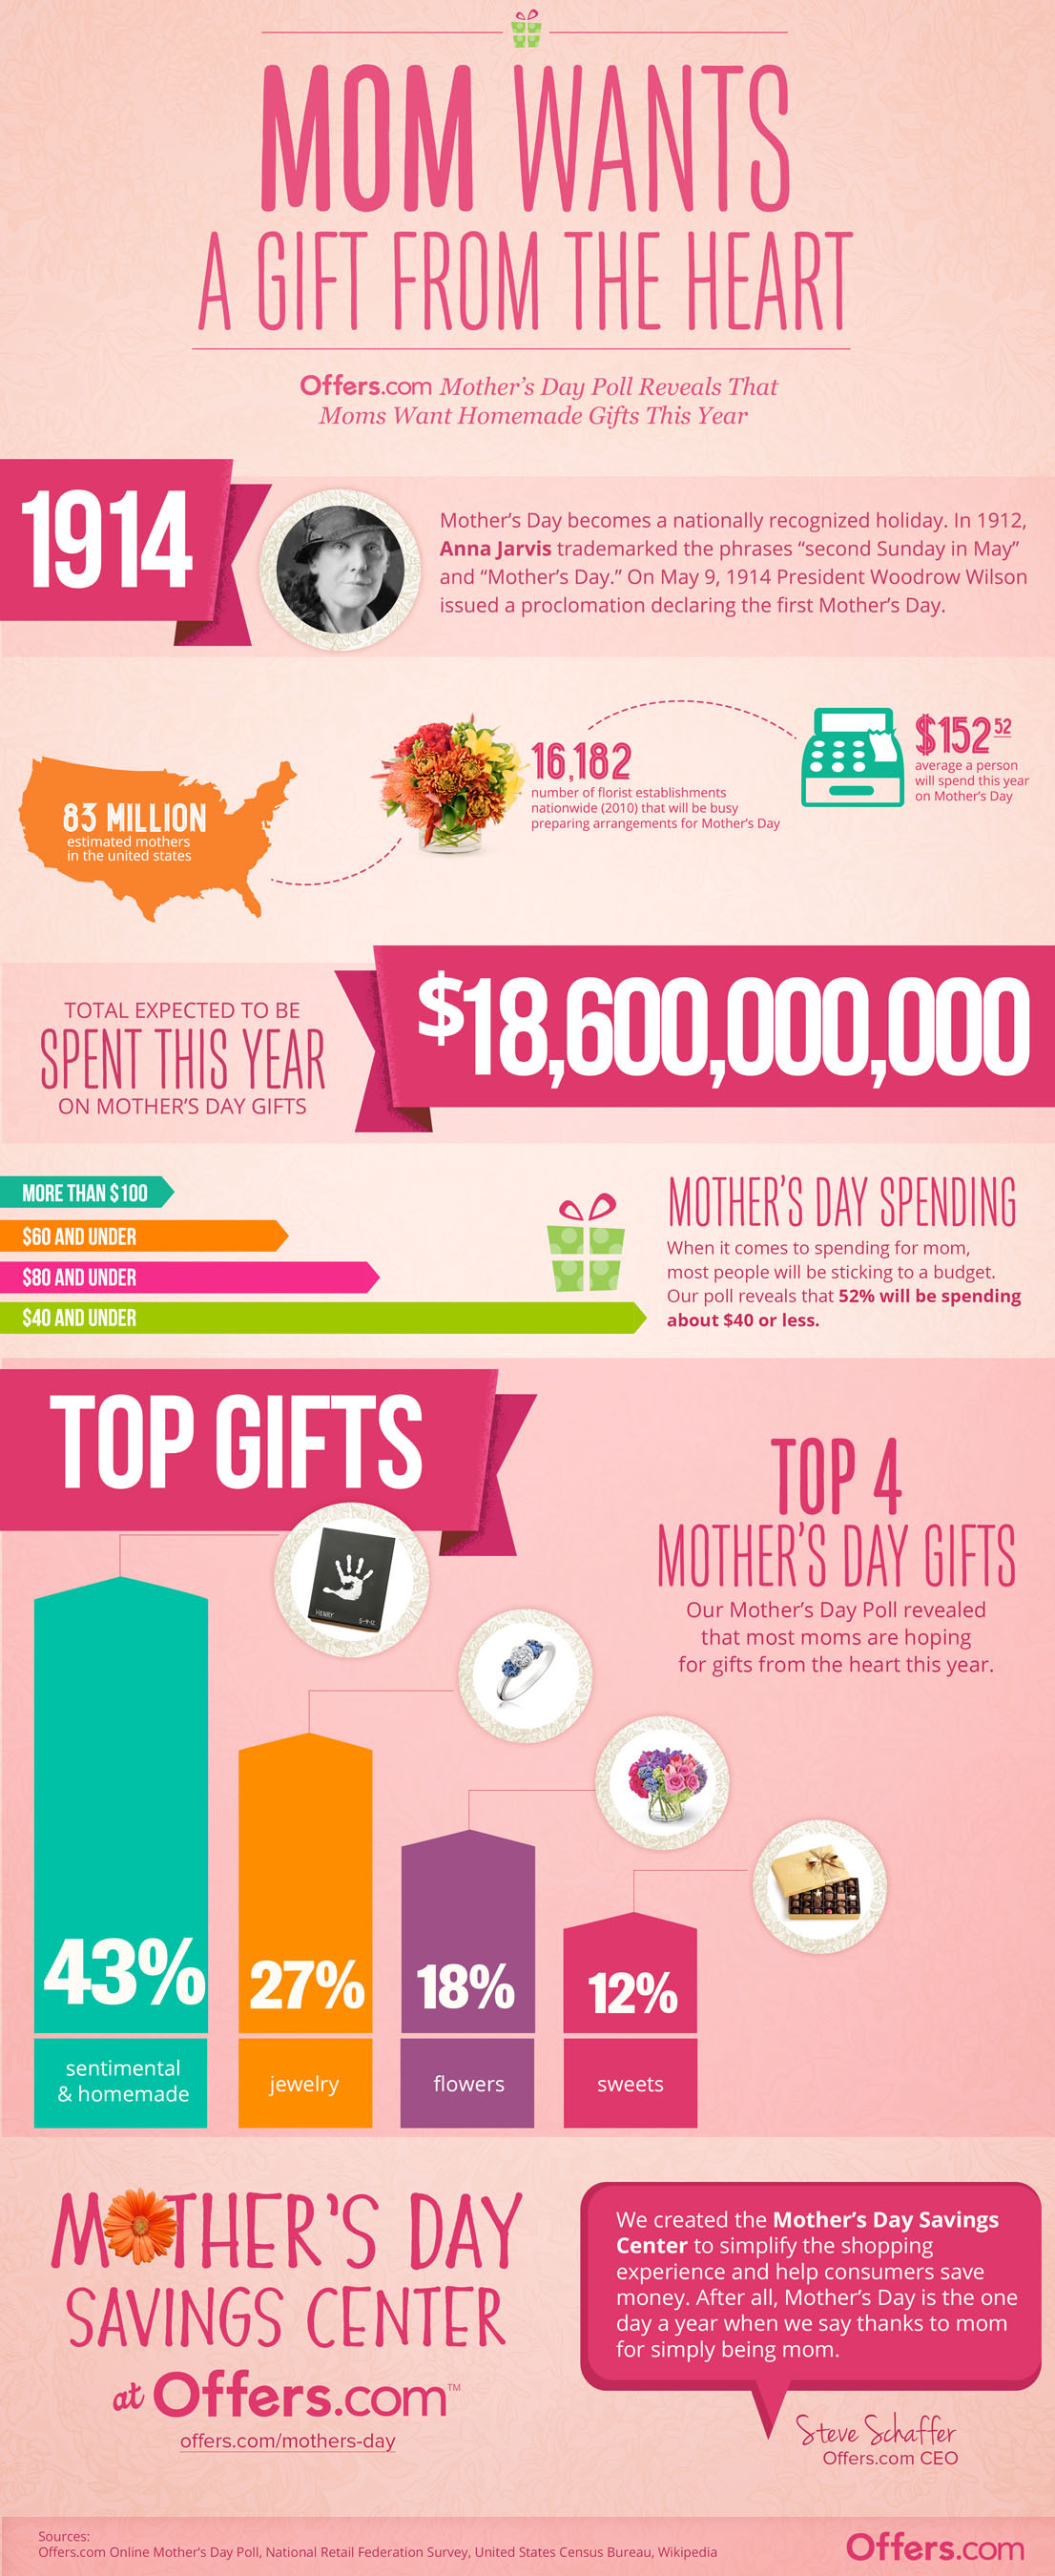 Offers.com Mother's Day Poll Reveals 43% of Moms Want Homemade Gifts this Year